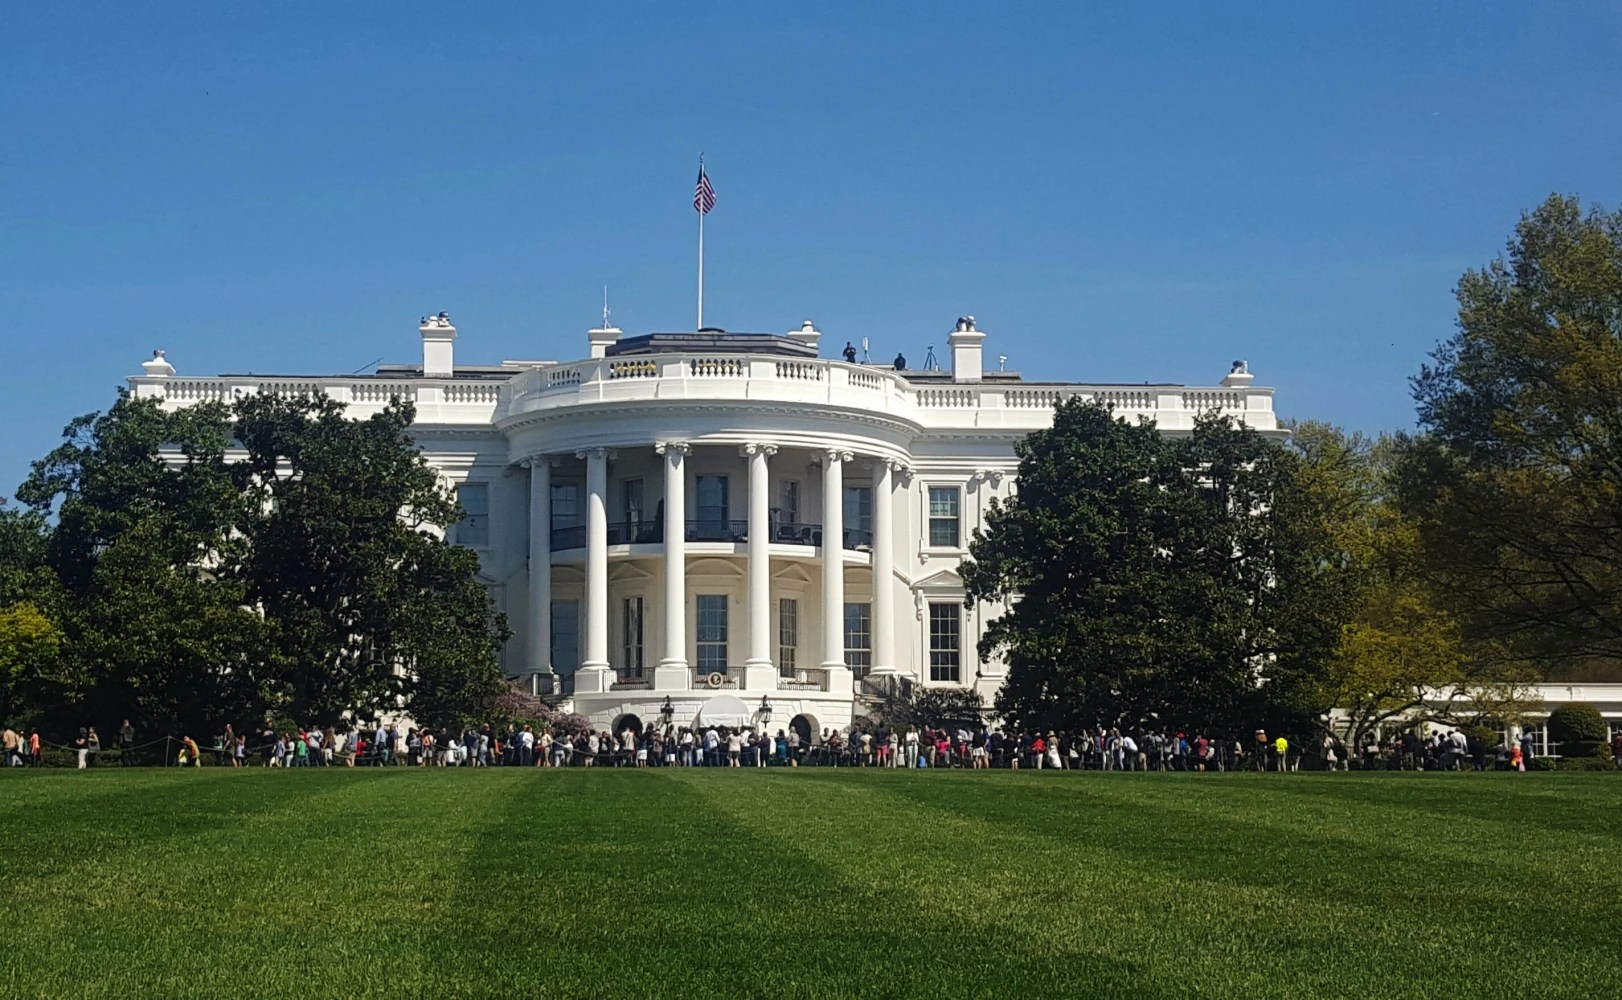 Bomb scare at White House, one detained